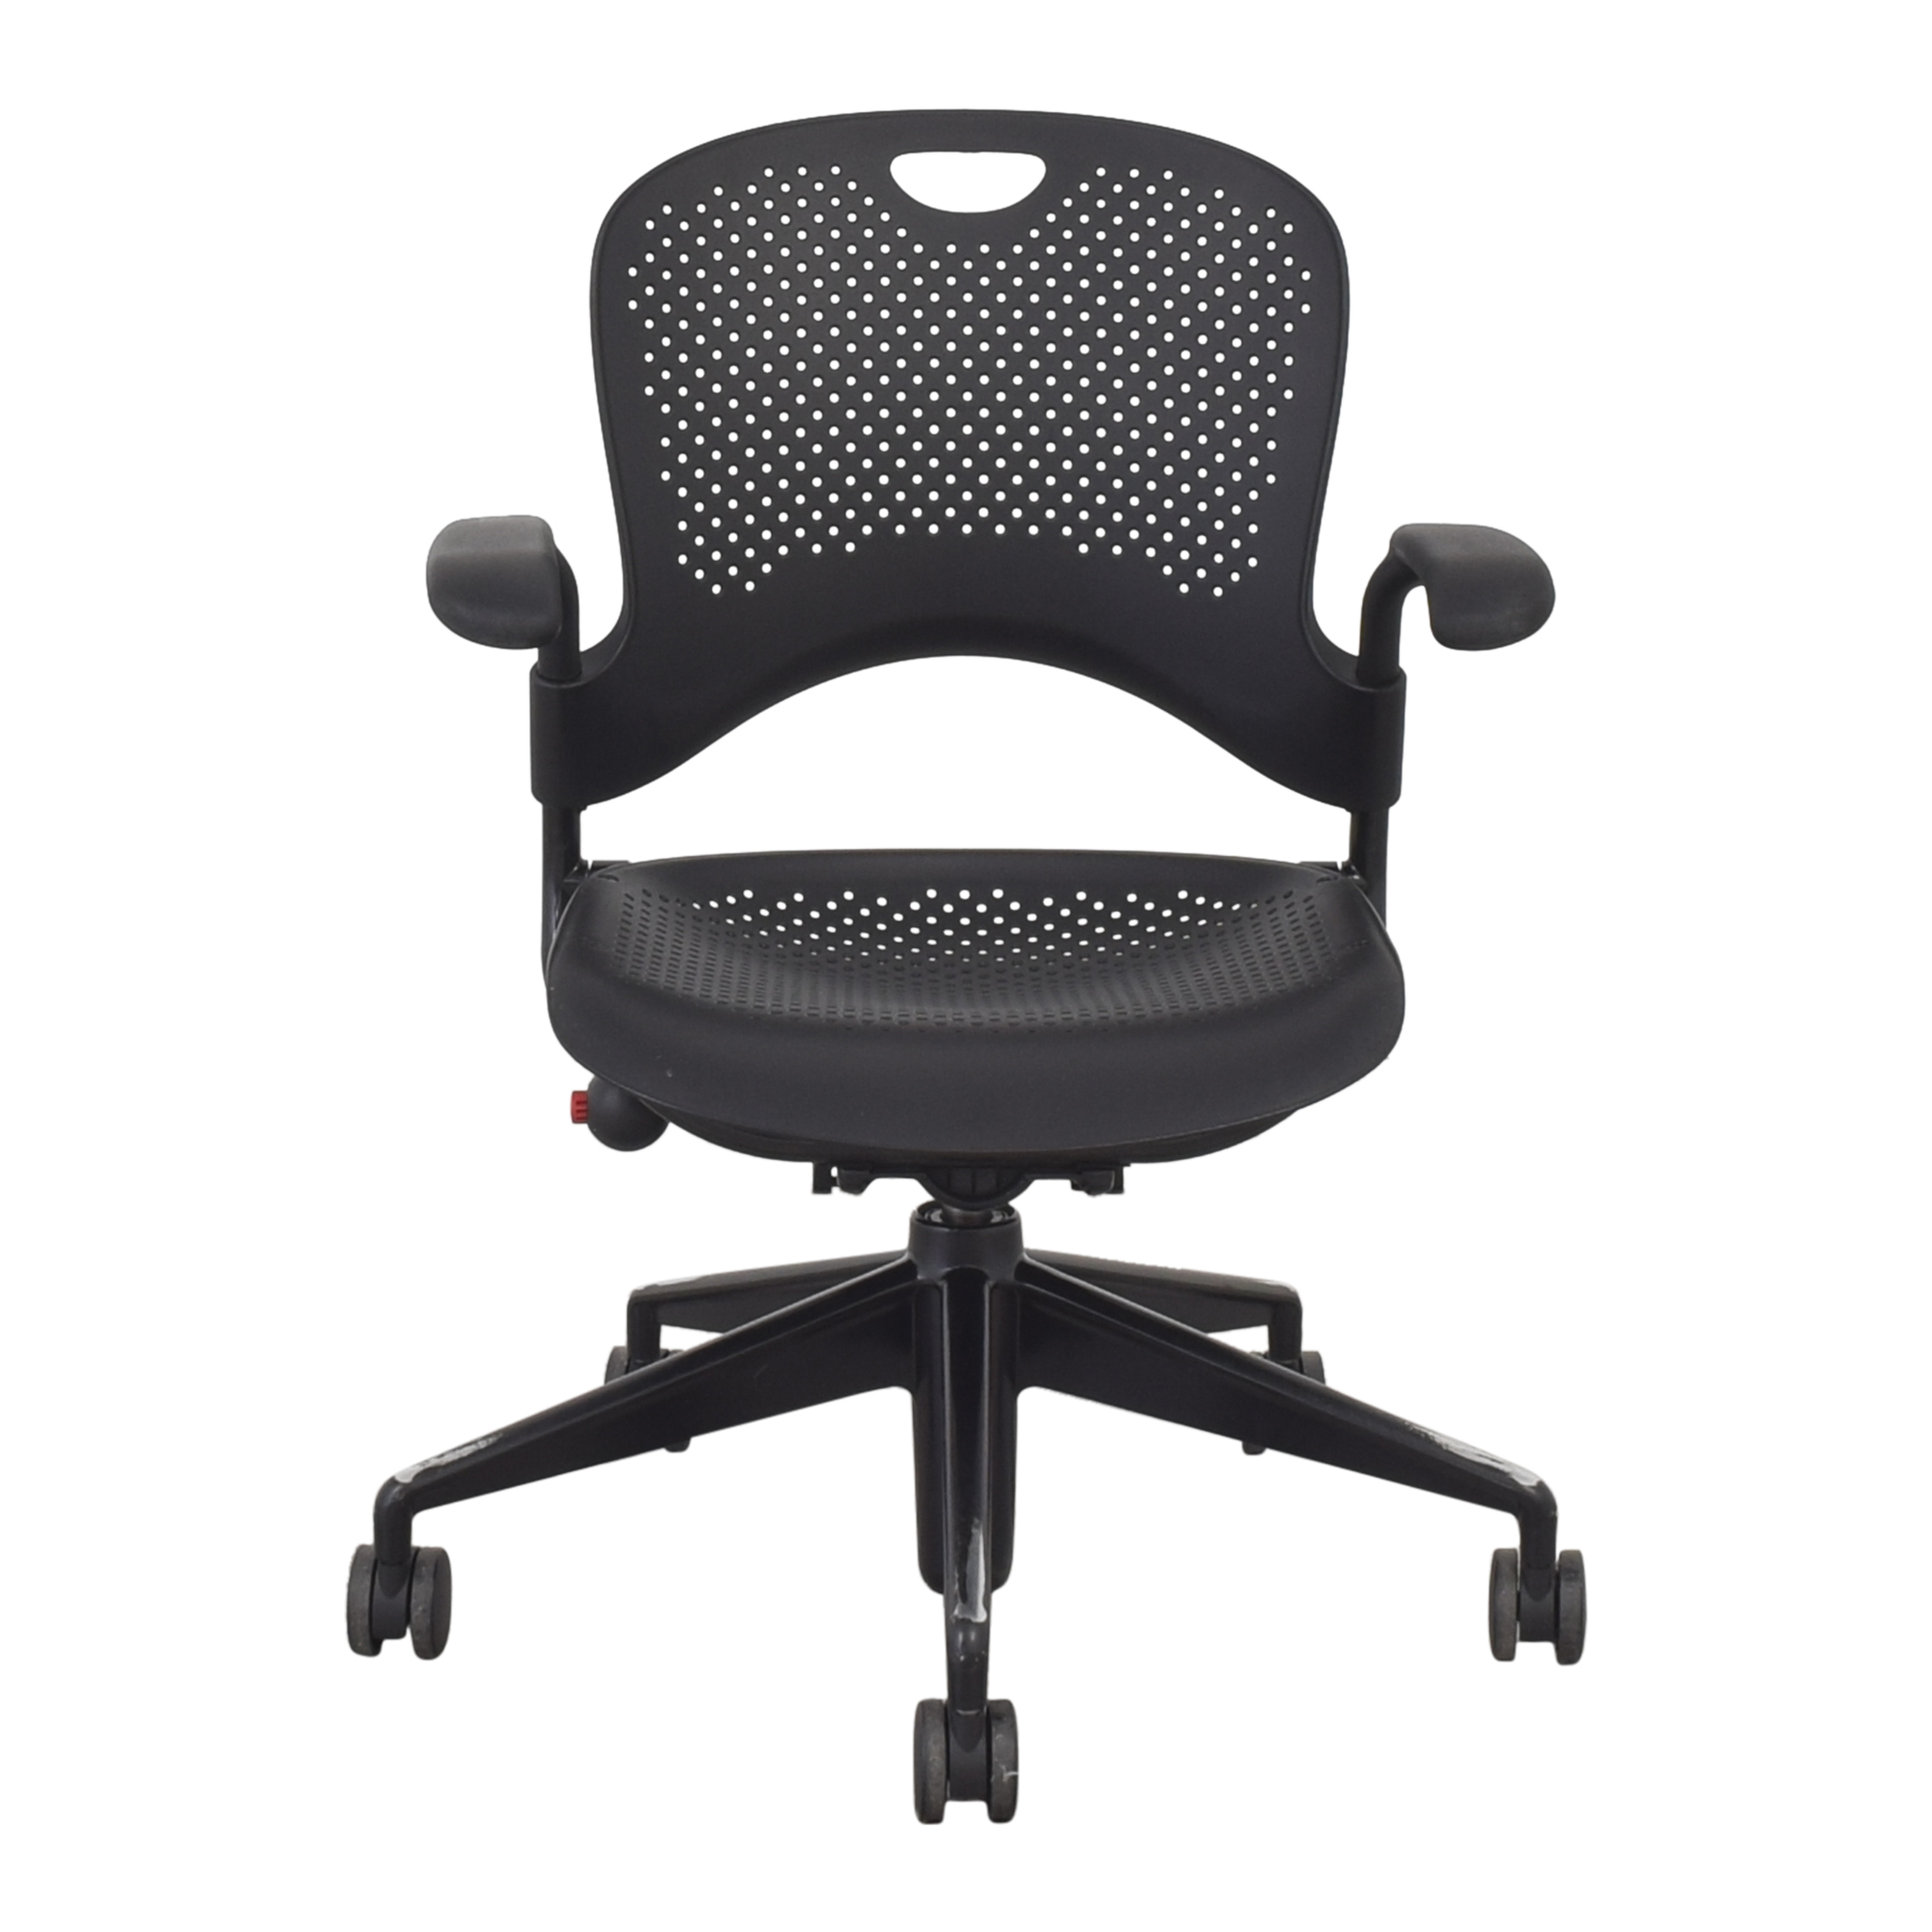 Herman Miller Herman Miller Caper Multipurpose Chair for sale